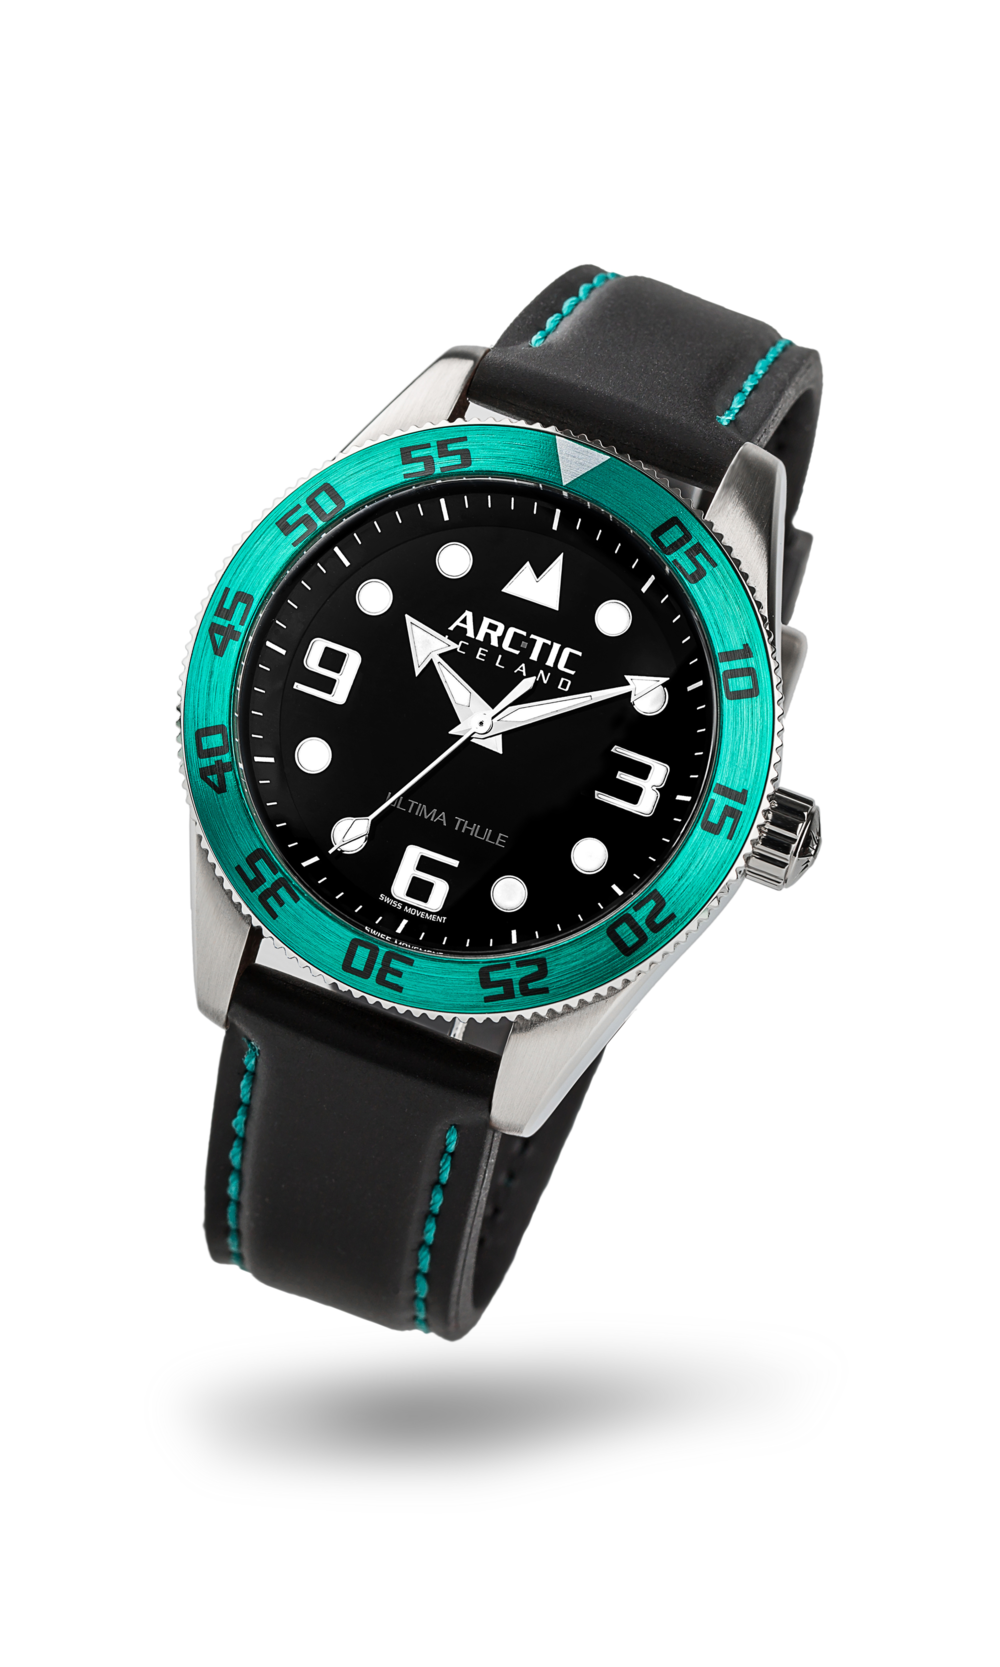 ARC-TIC Iceland UT Green with rubber strap  Learn More